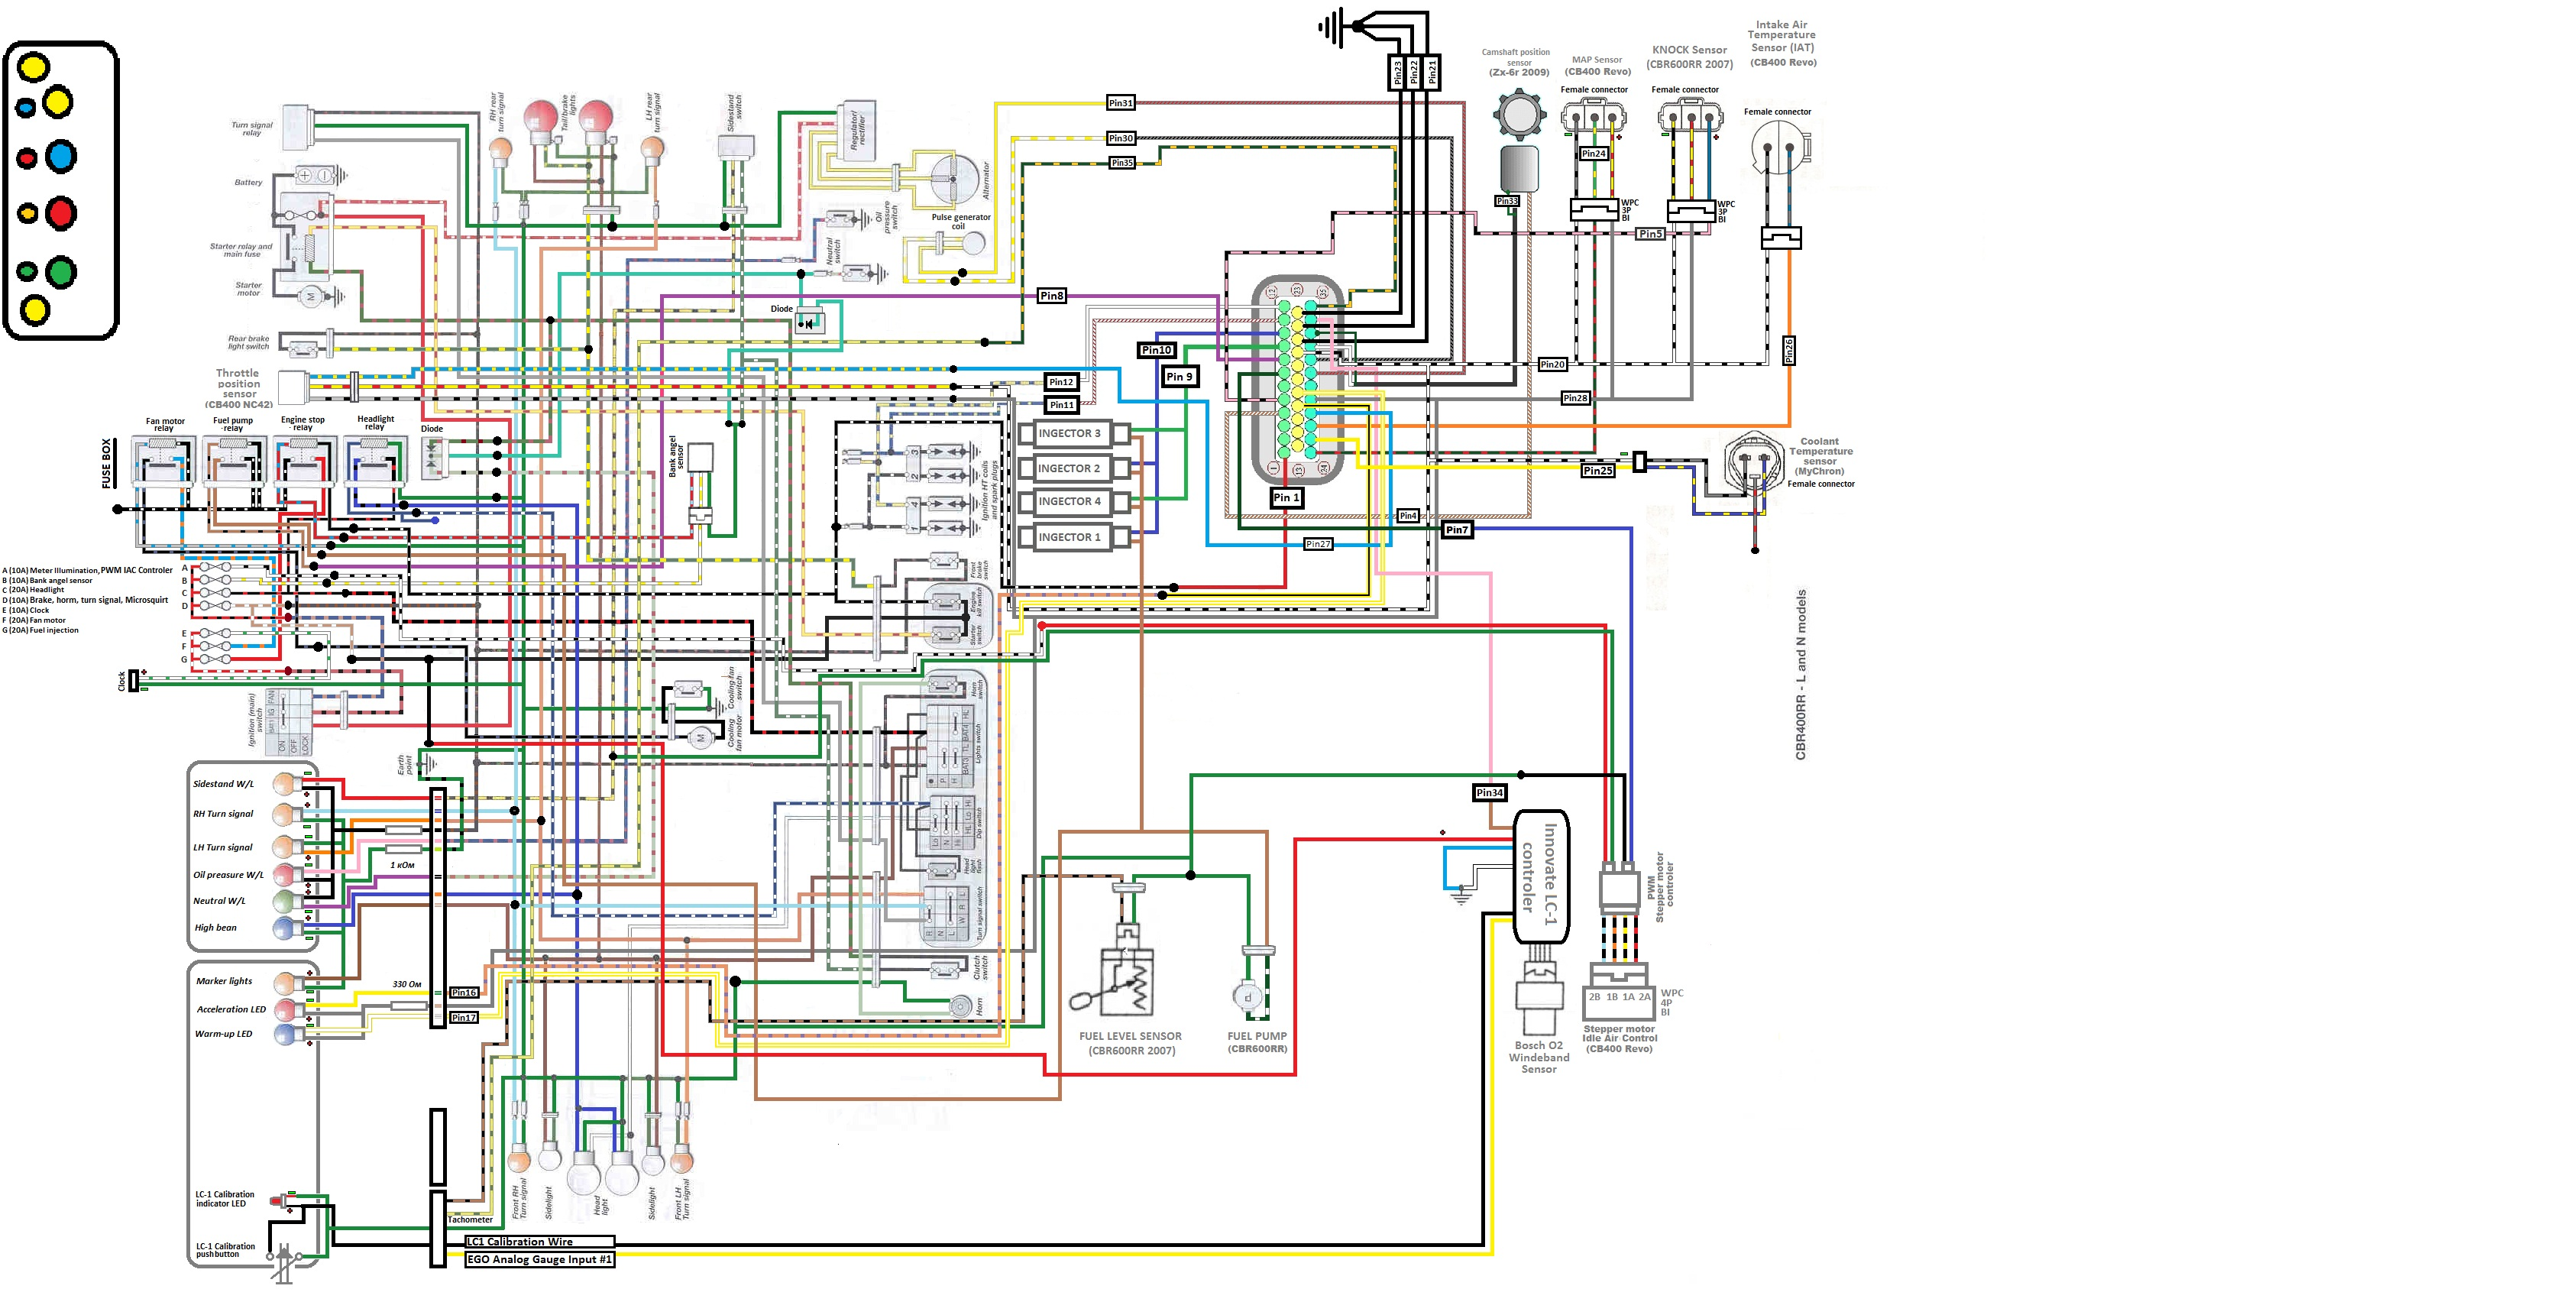 Fiat Ducato Wiring Diagram 2005 Data Diagrams Engine Megasquirt Support Forum Msextra U2022 Help First Start 500 1977 Spider Dashboard Controls